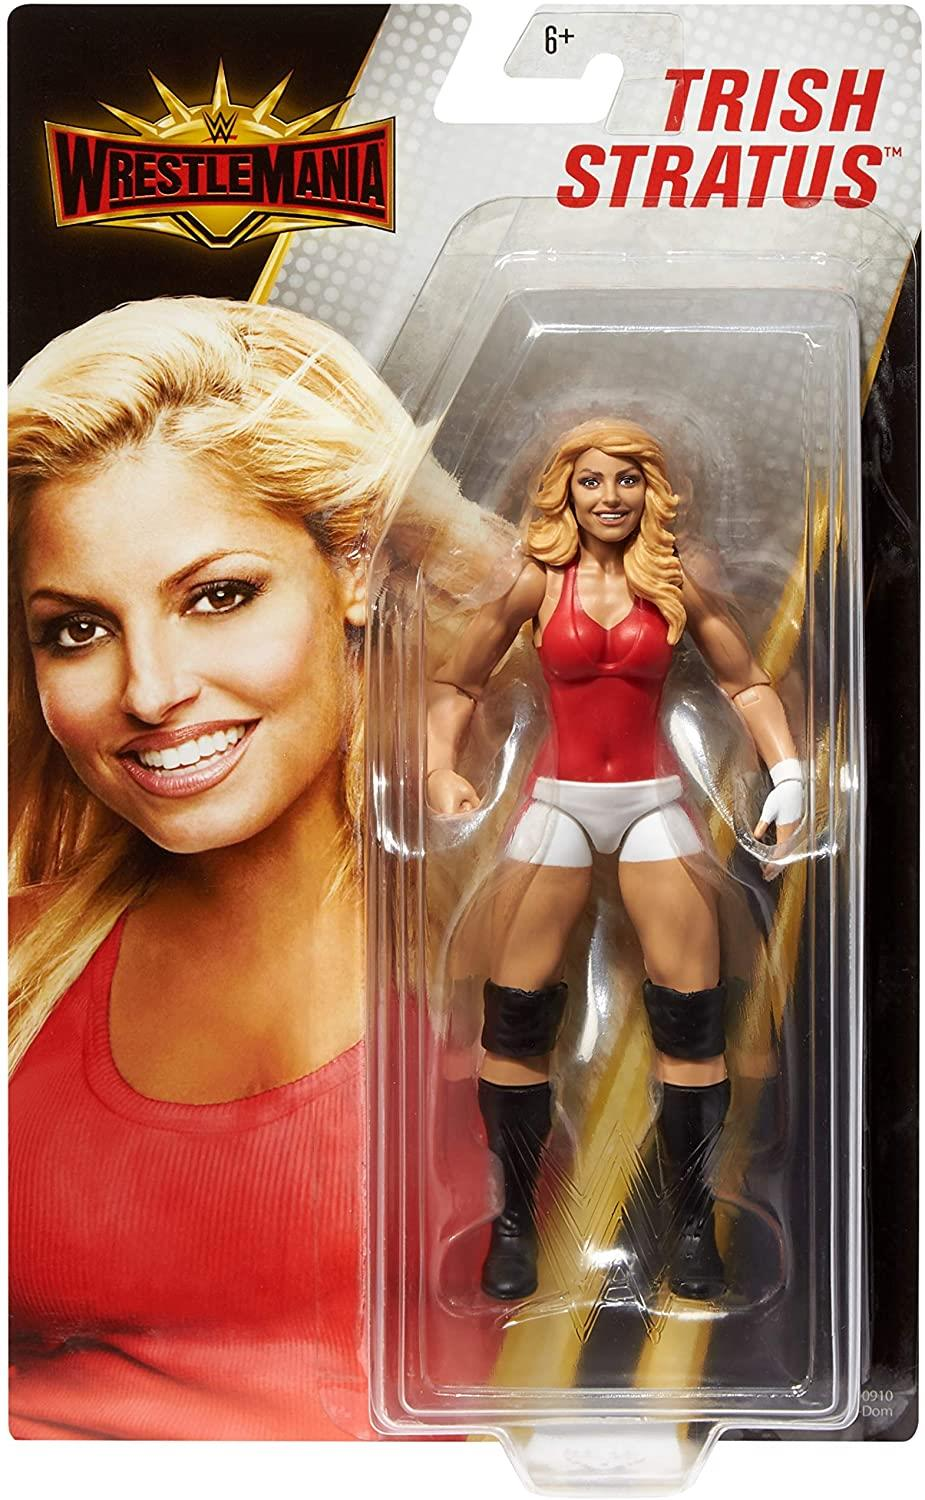 WWE WrestleMania Trish Stratus Wrestling Action Figure Articulated Detailed